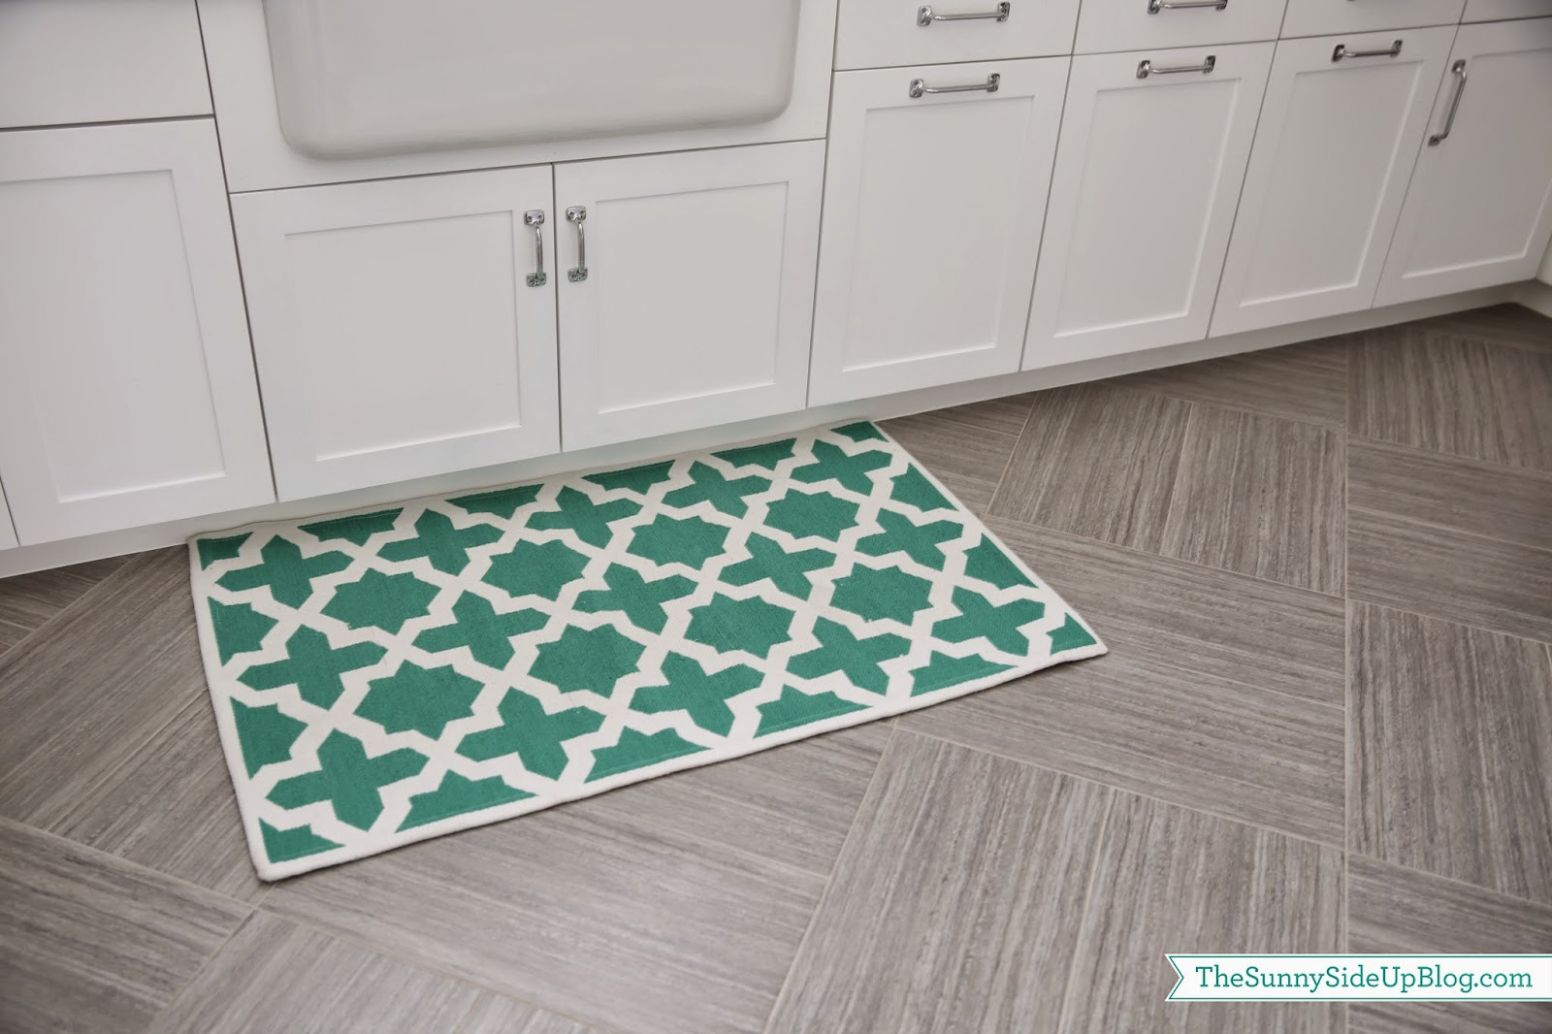 Laundry room rugs - The Sunny Side Up Blog - laundry room decor rugs